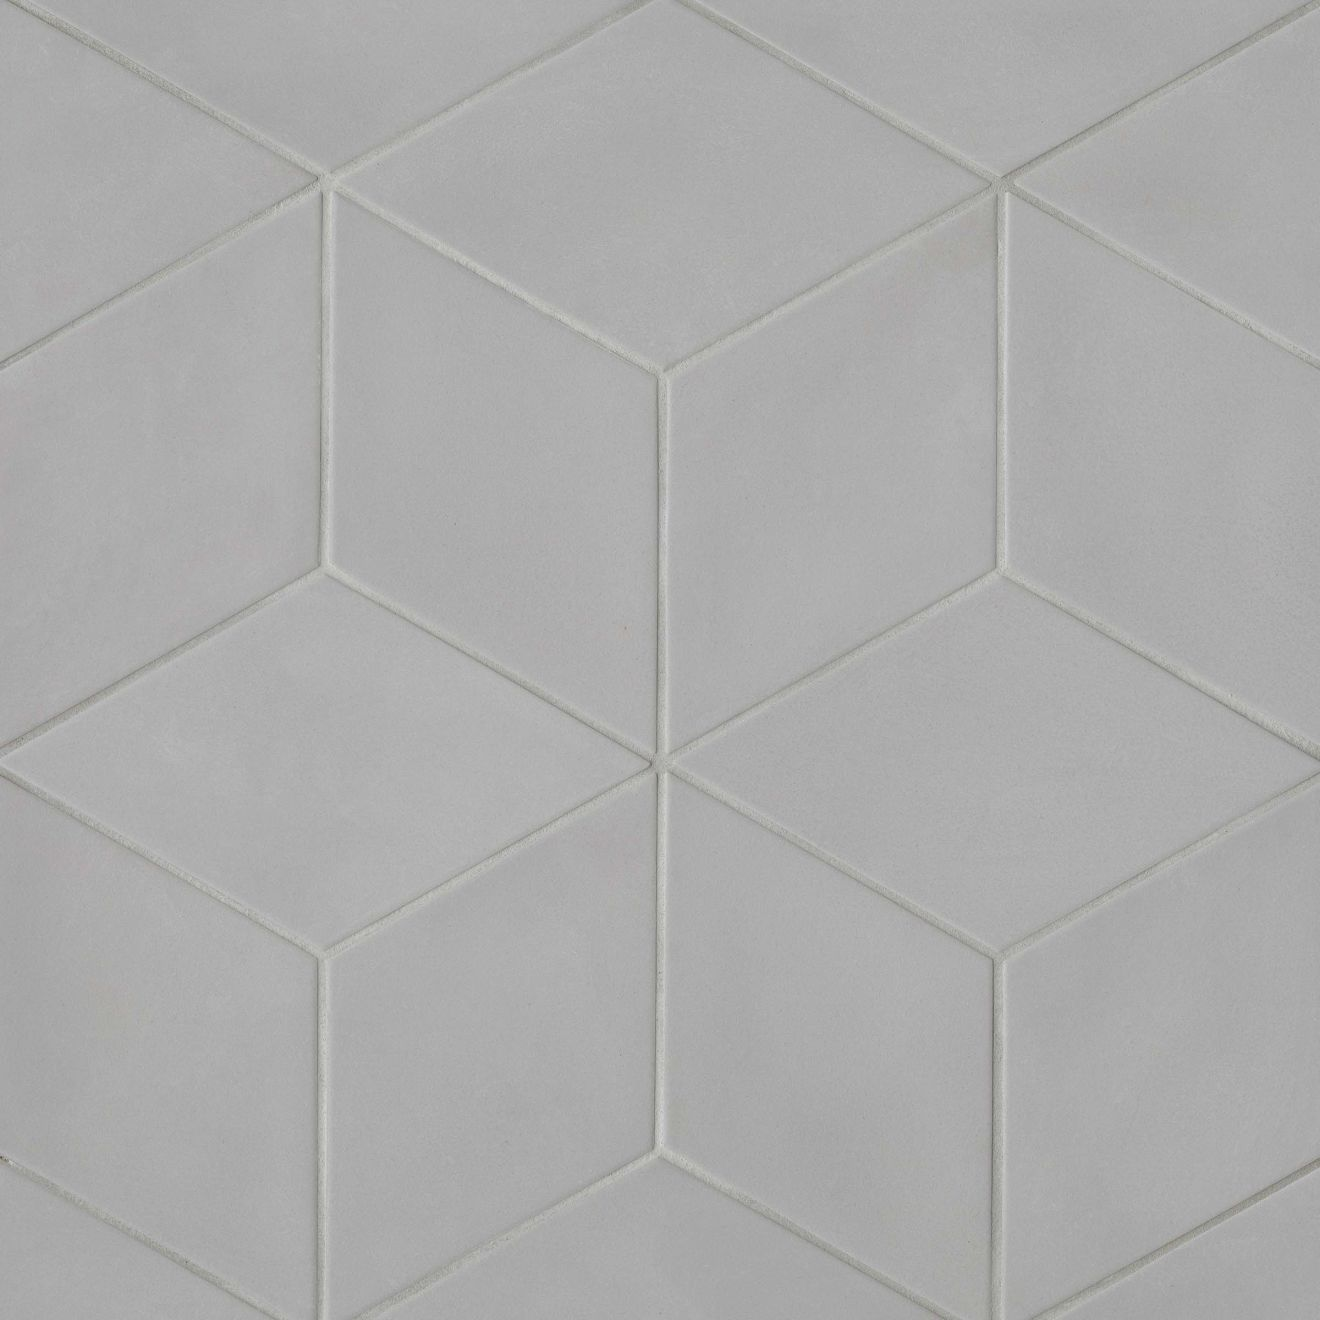 "Allora 7.5"" x 12.75"" Floor & Wall Tile in Solid Grey"